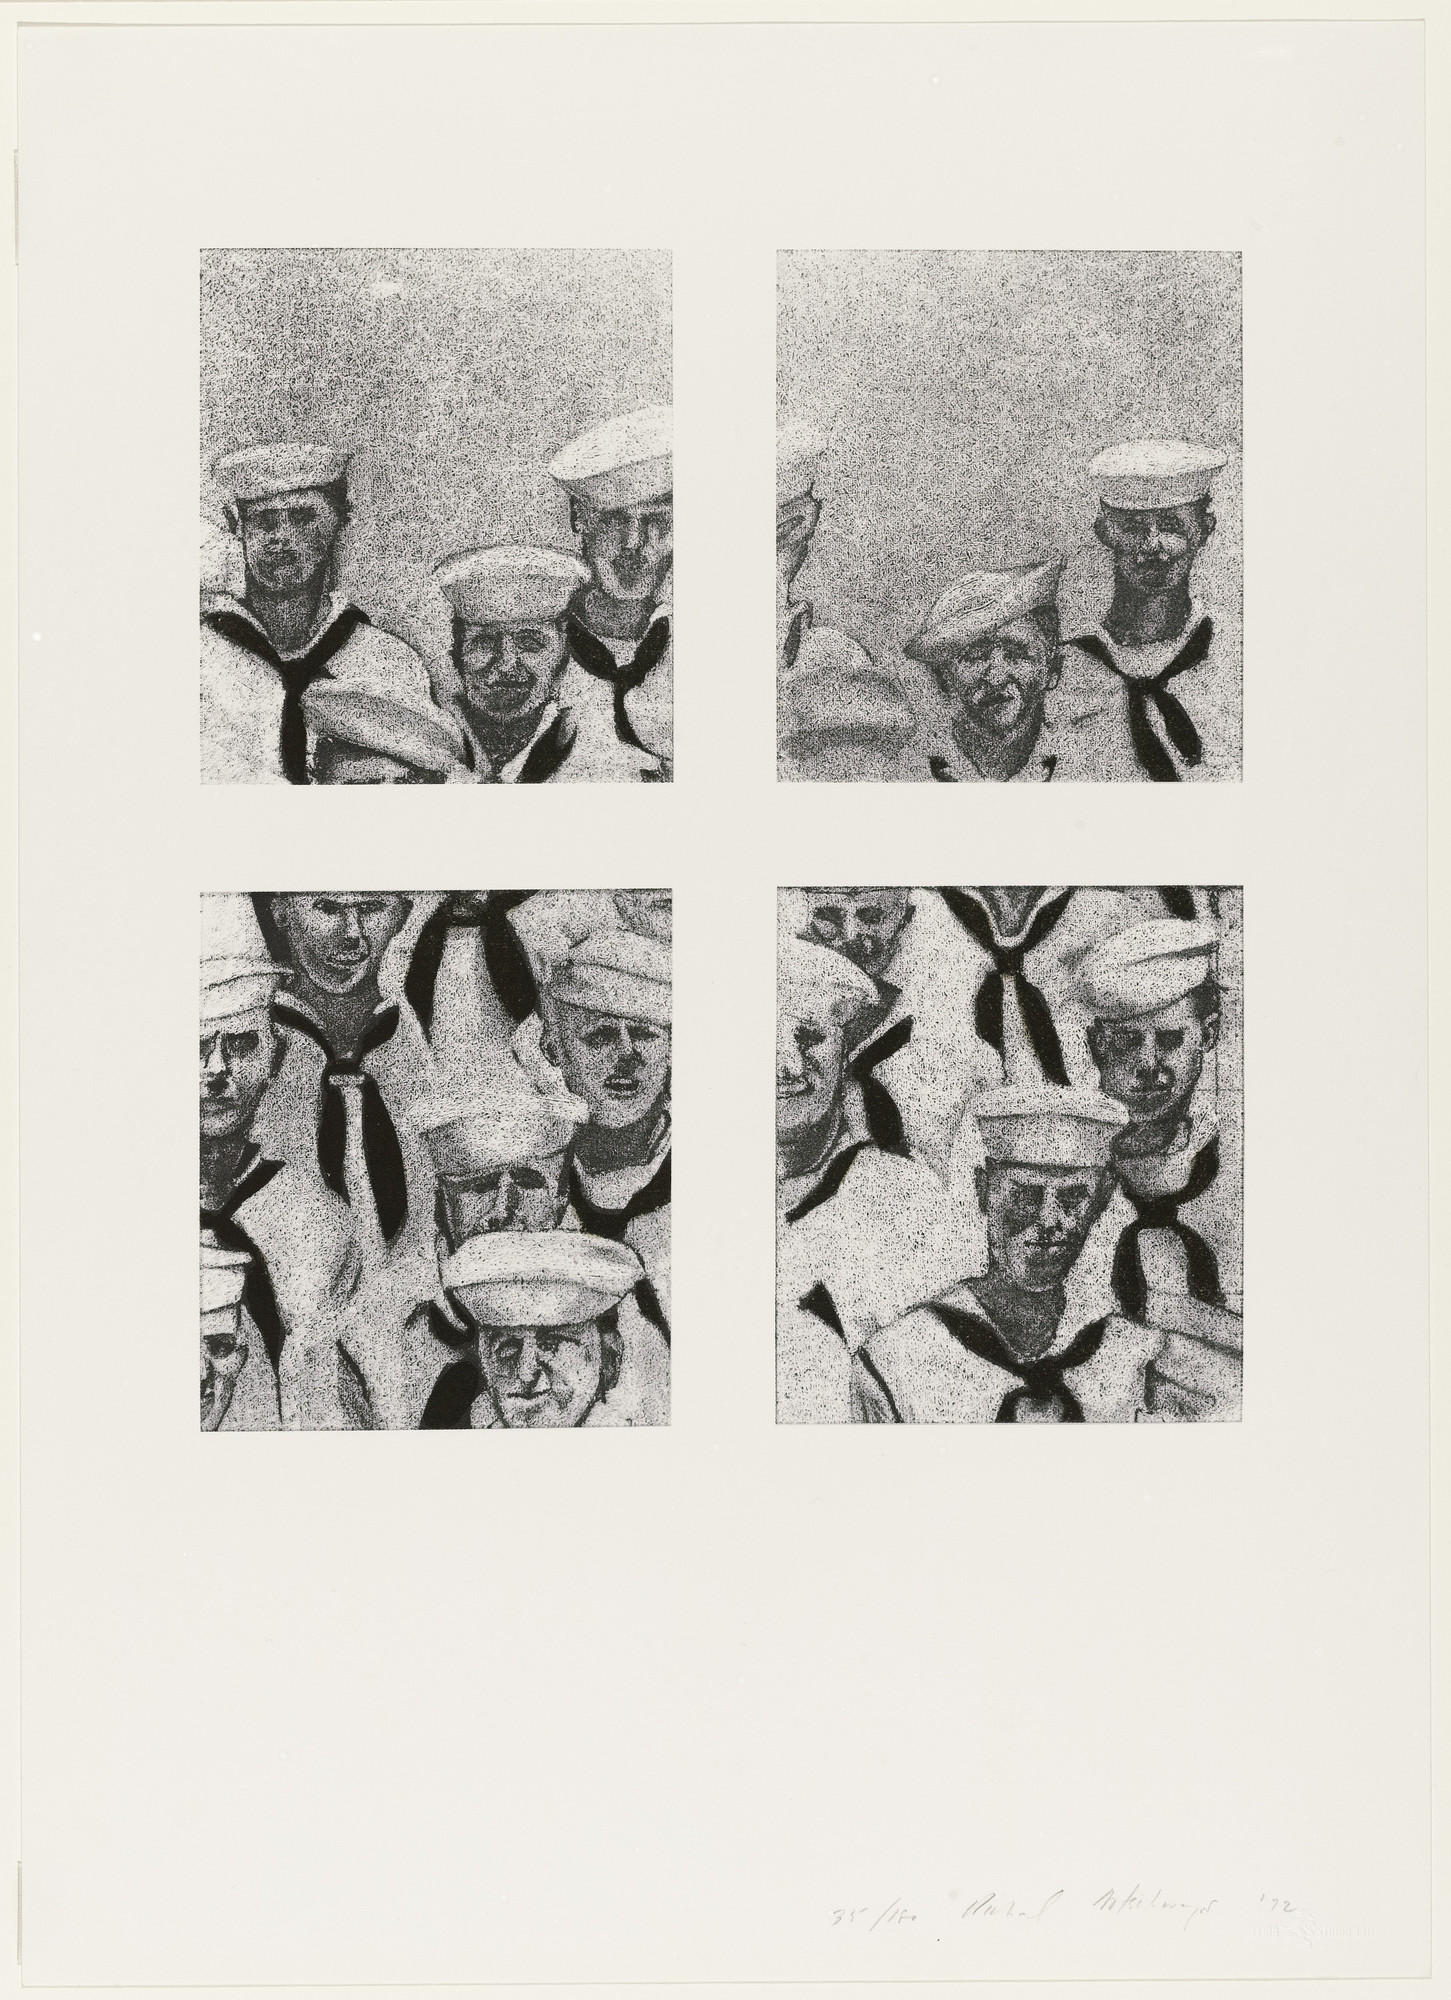 Richard Artschwager. Sailors from an untitled portfolio. 1972